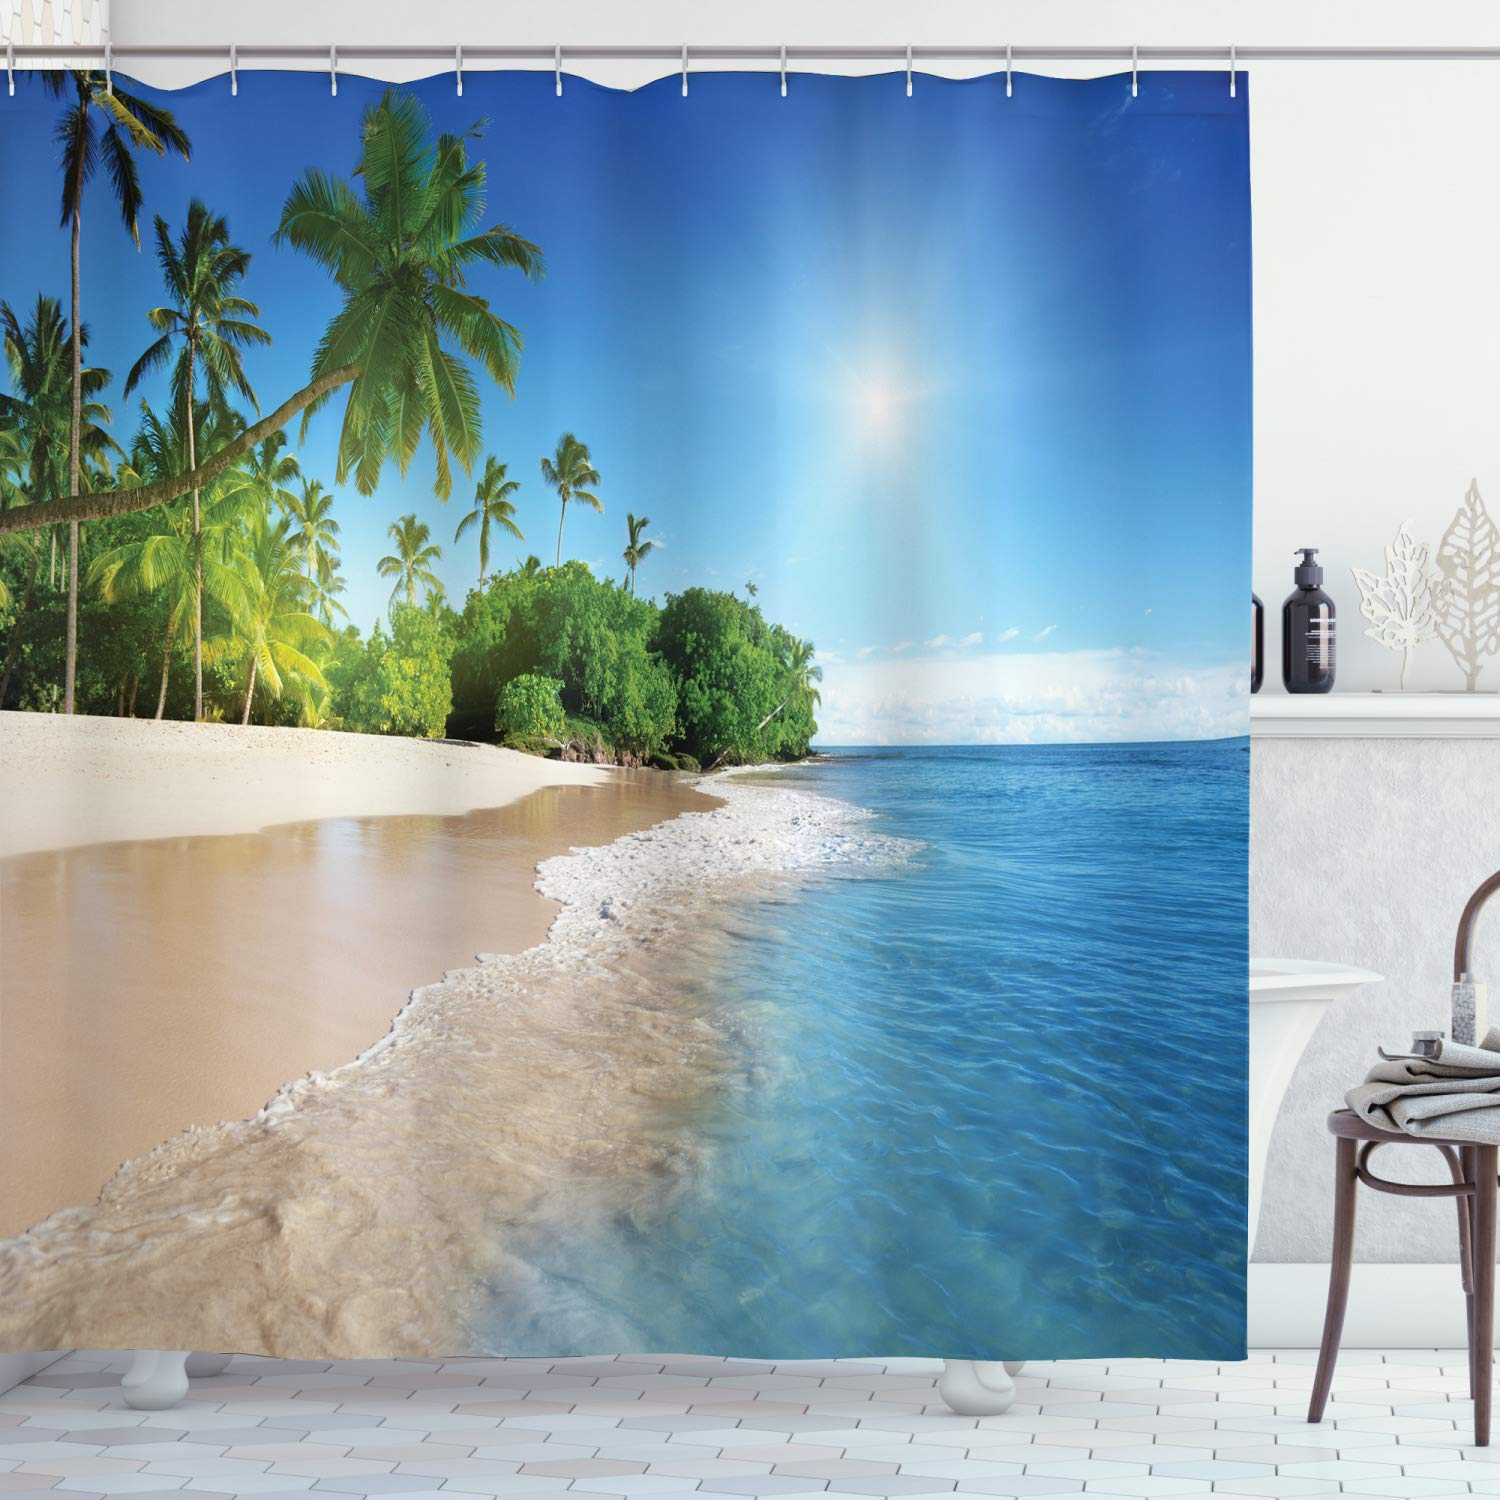 Ambesonne Ocean Decor Collection, Tropical Palm Trees on a Sunny Island Beach Scene Panoramic View Picture, Polyester Fabric Bathroom Shower Curtain Set with Hooks, Blue Green White Multicolored